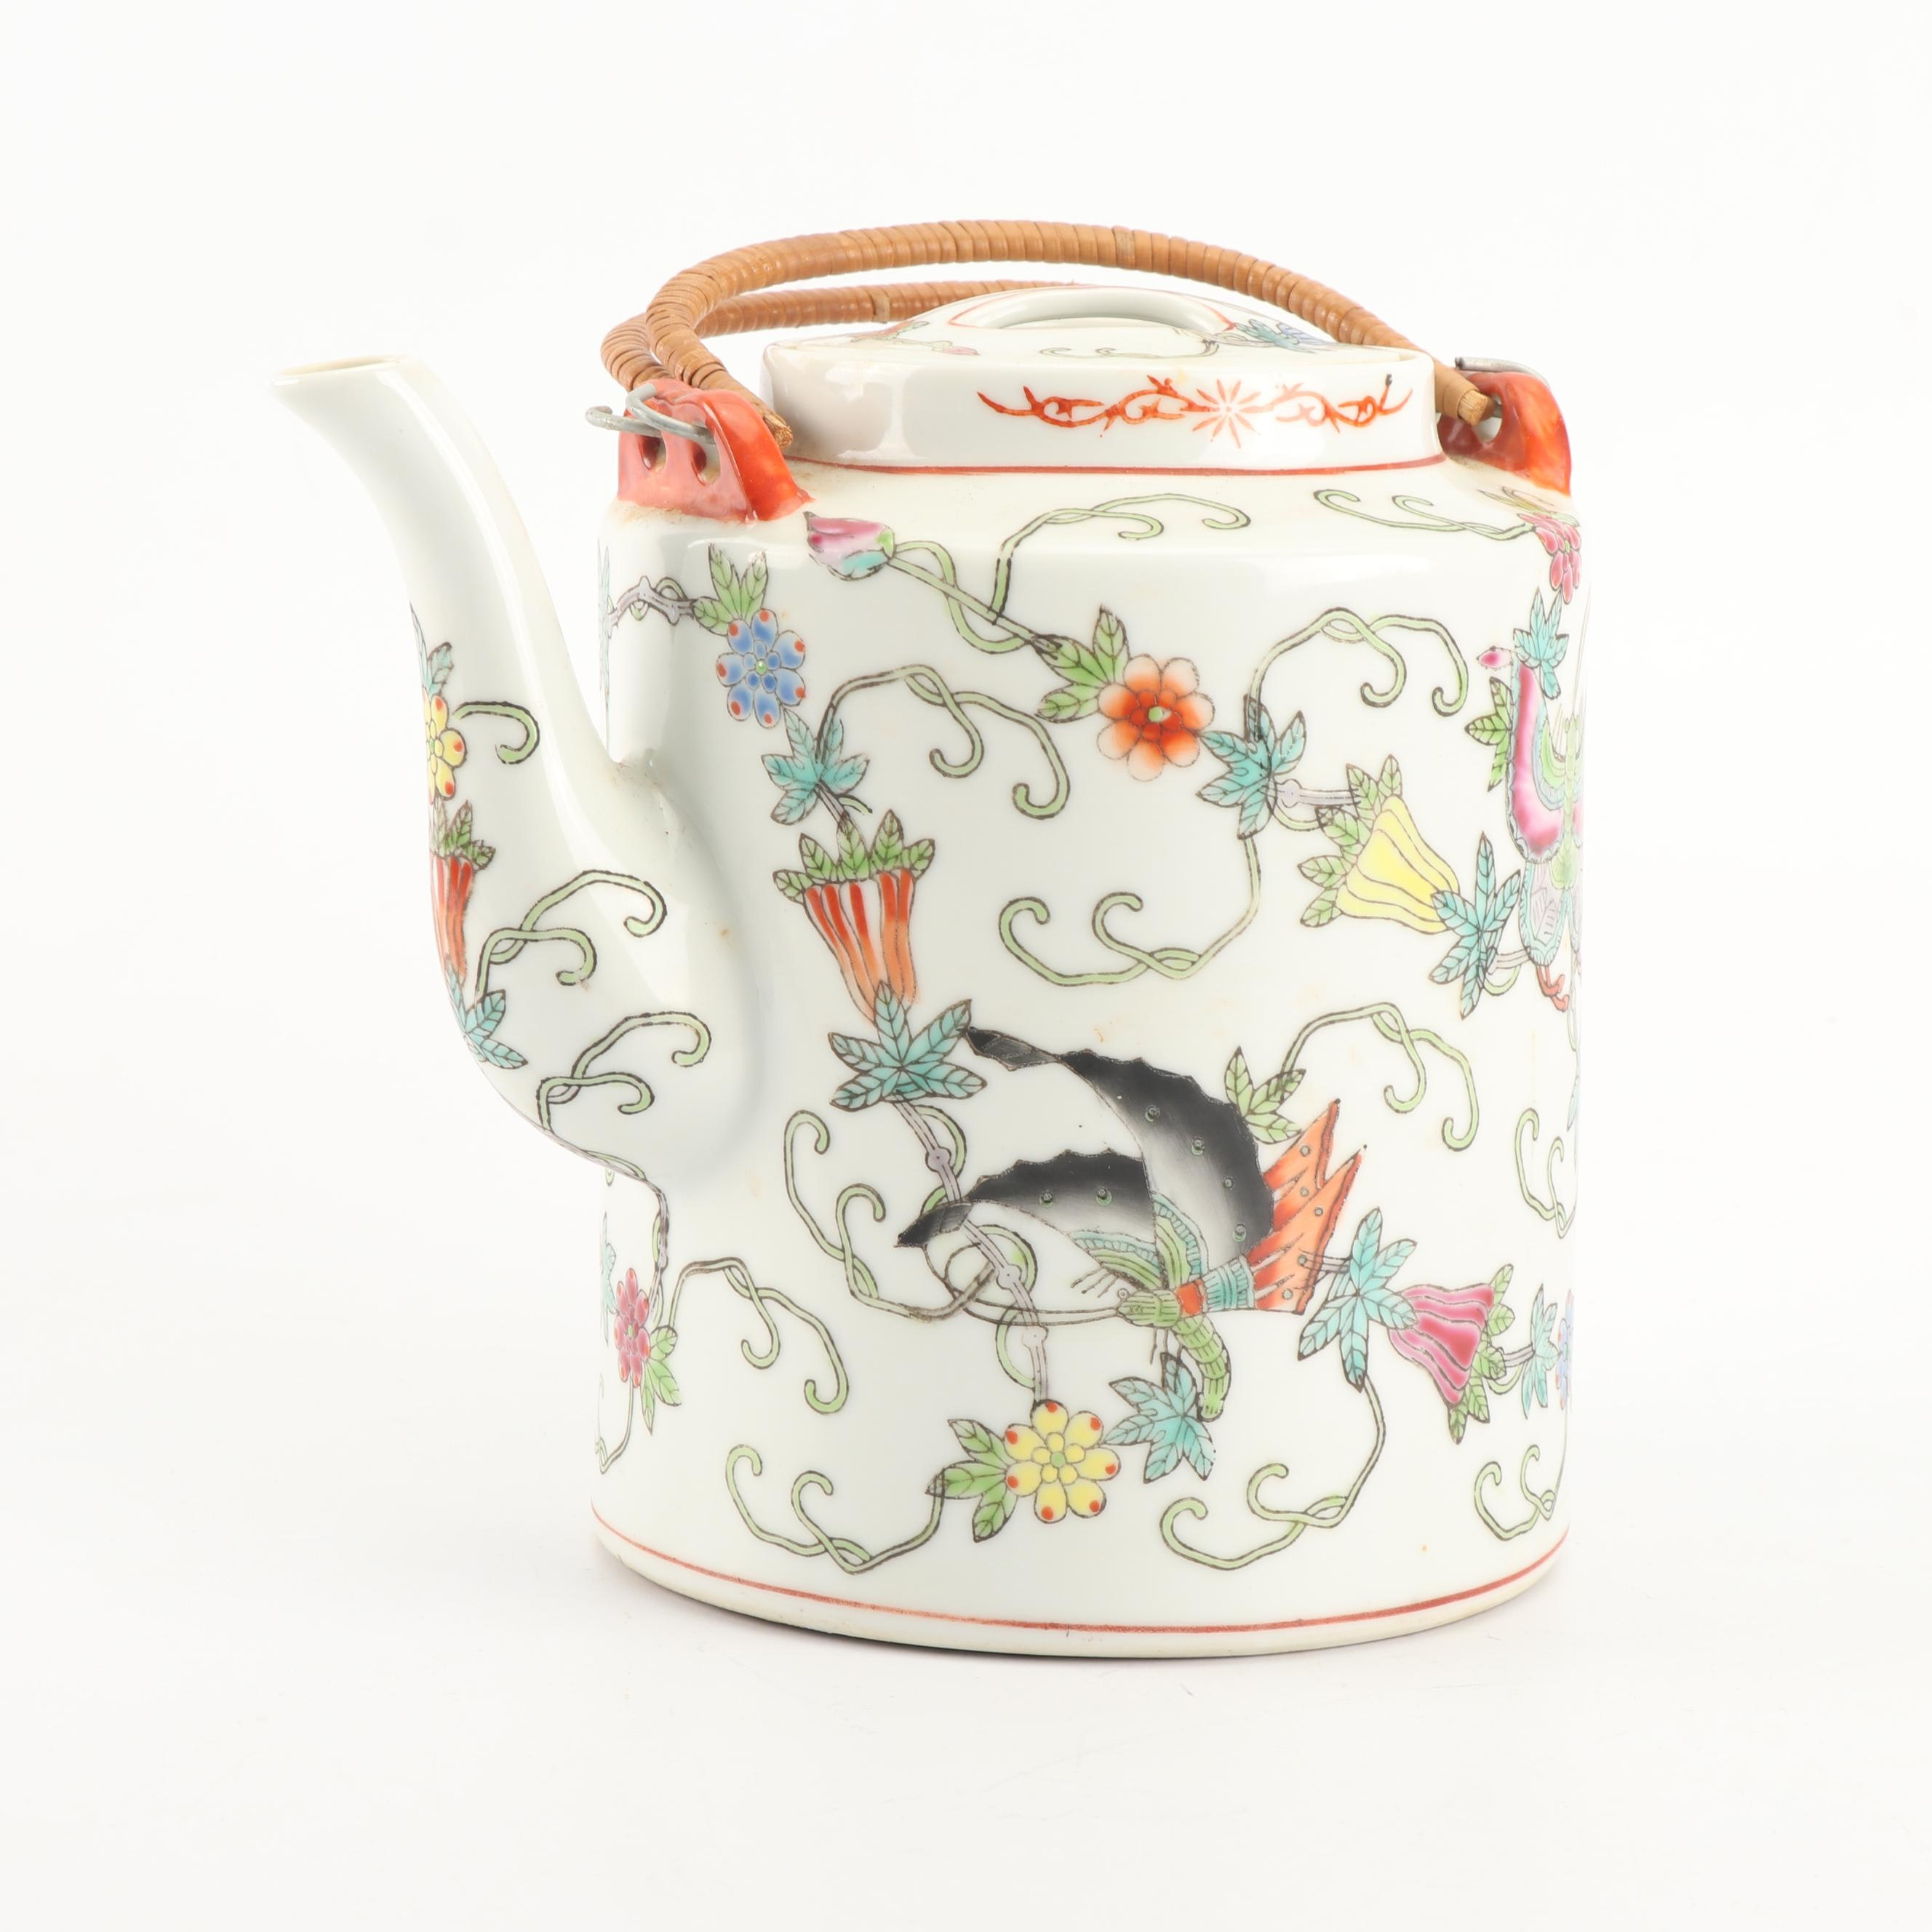 Chinese Hand Colored Porcelain Teapot, 20th Century